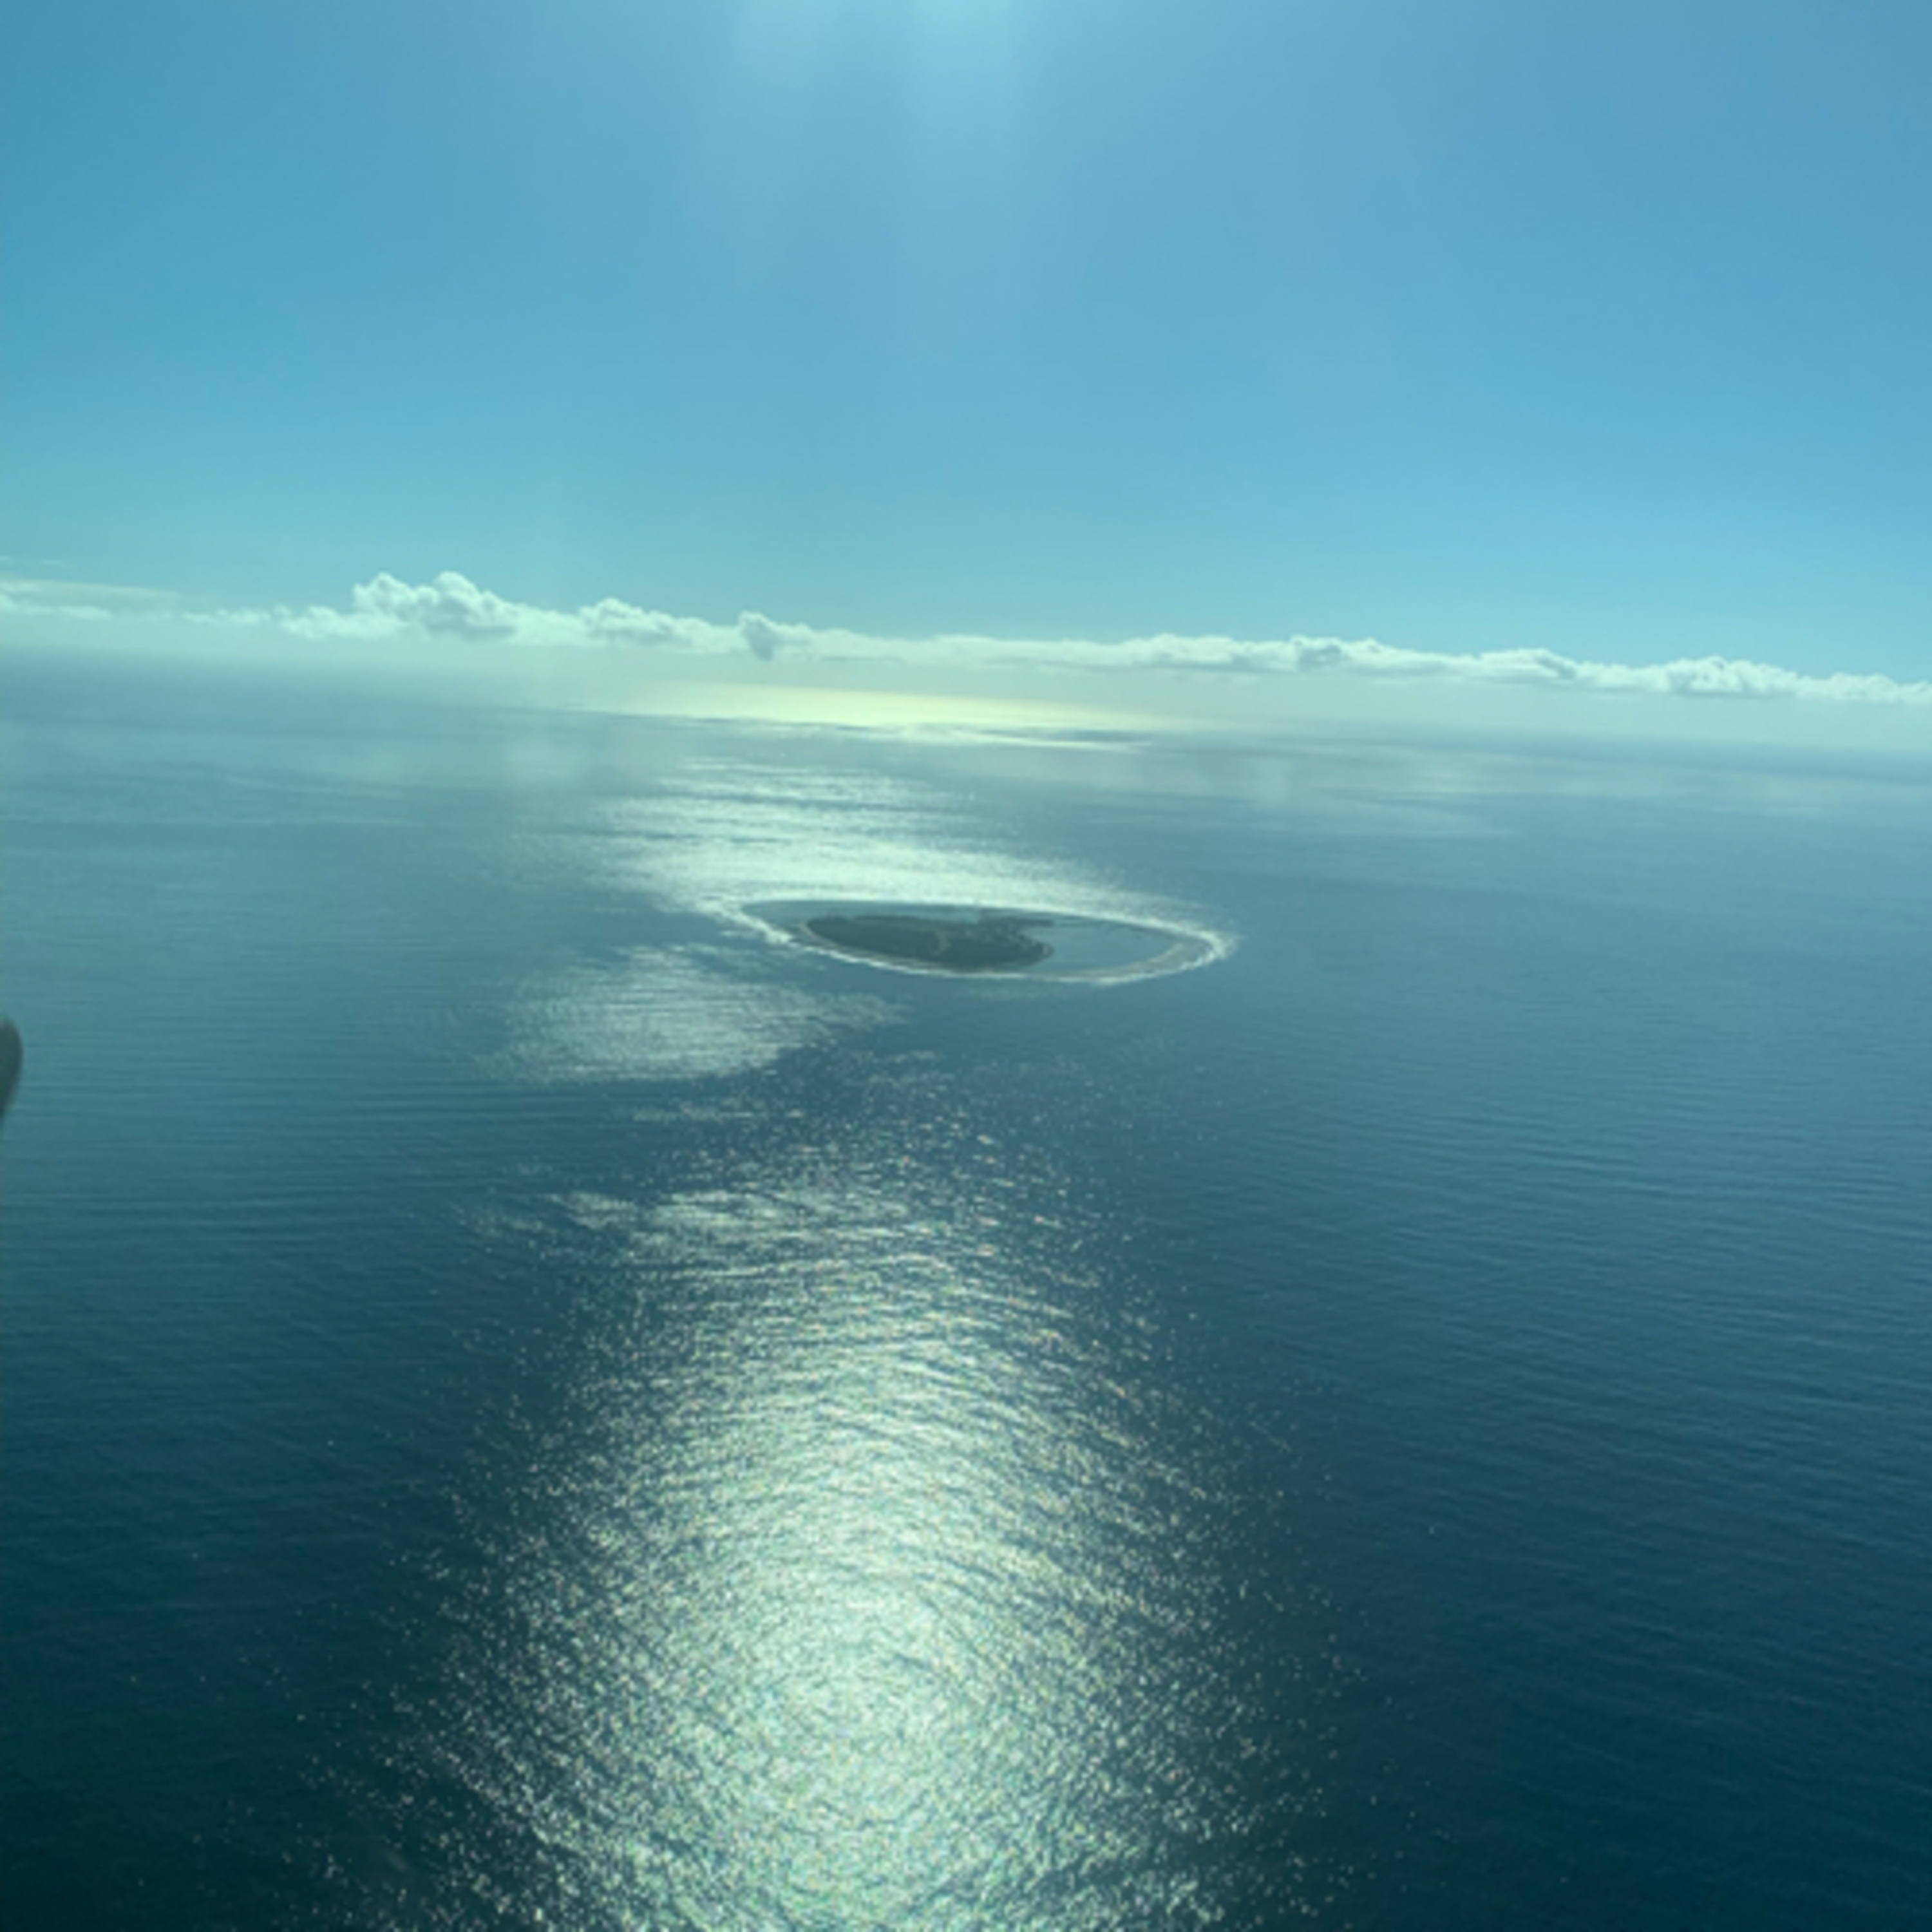 EP 89- Day trip to Lady Elliot Island, Southern Barrier Reef.